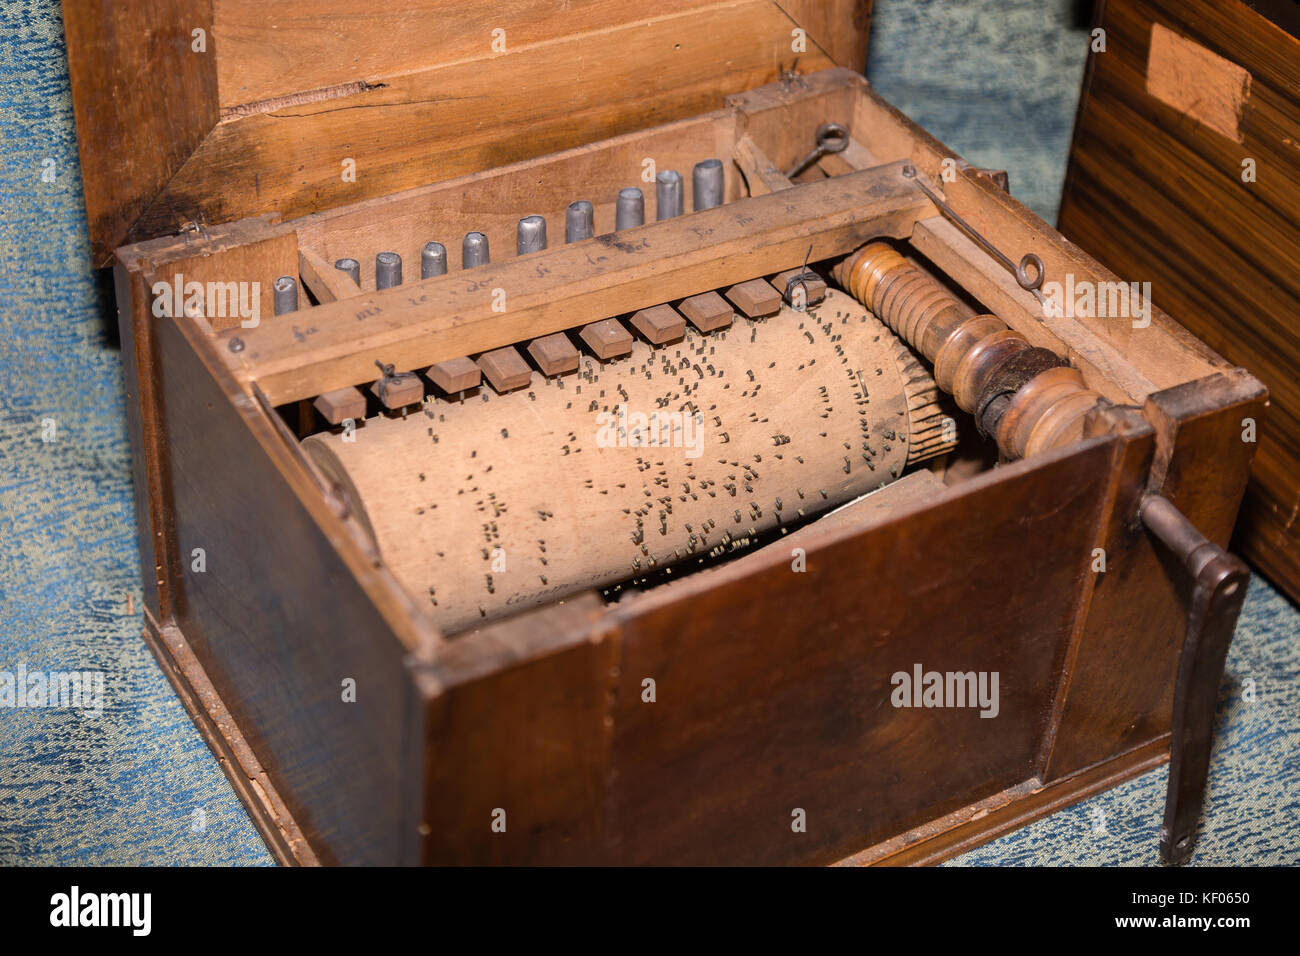 Detail Of Inner Parts Of Wooden Barrel Organ Stock Photo 164117996